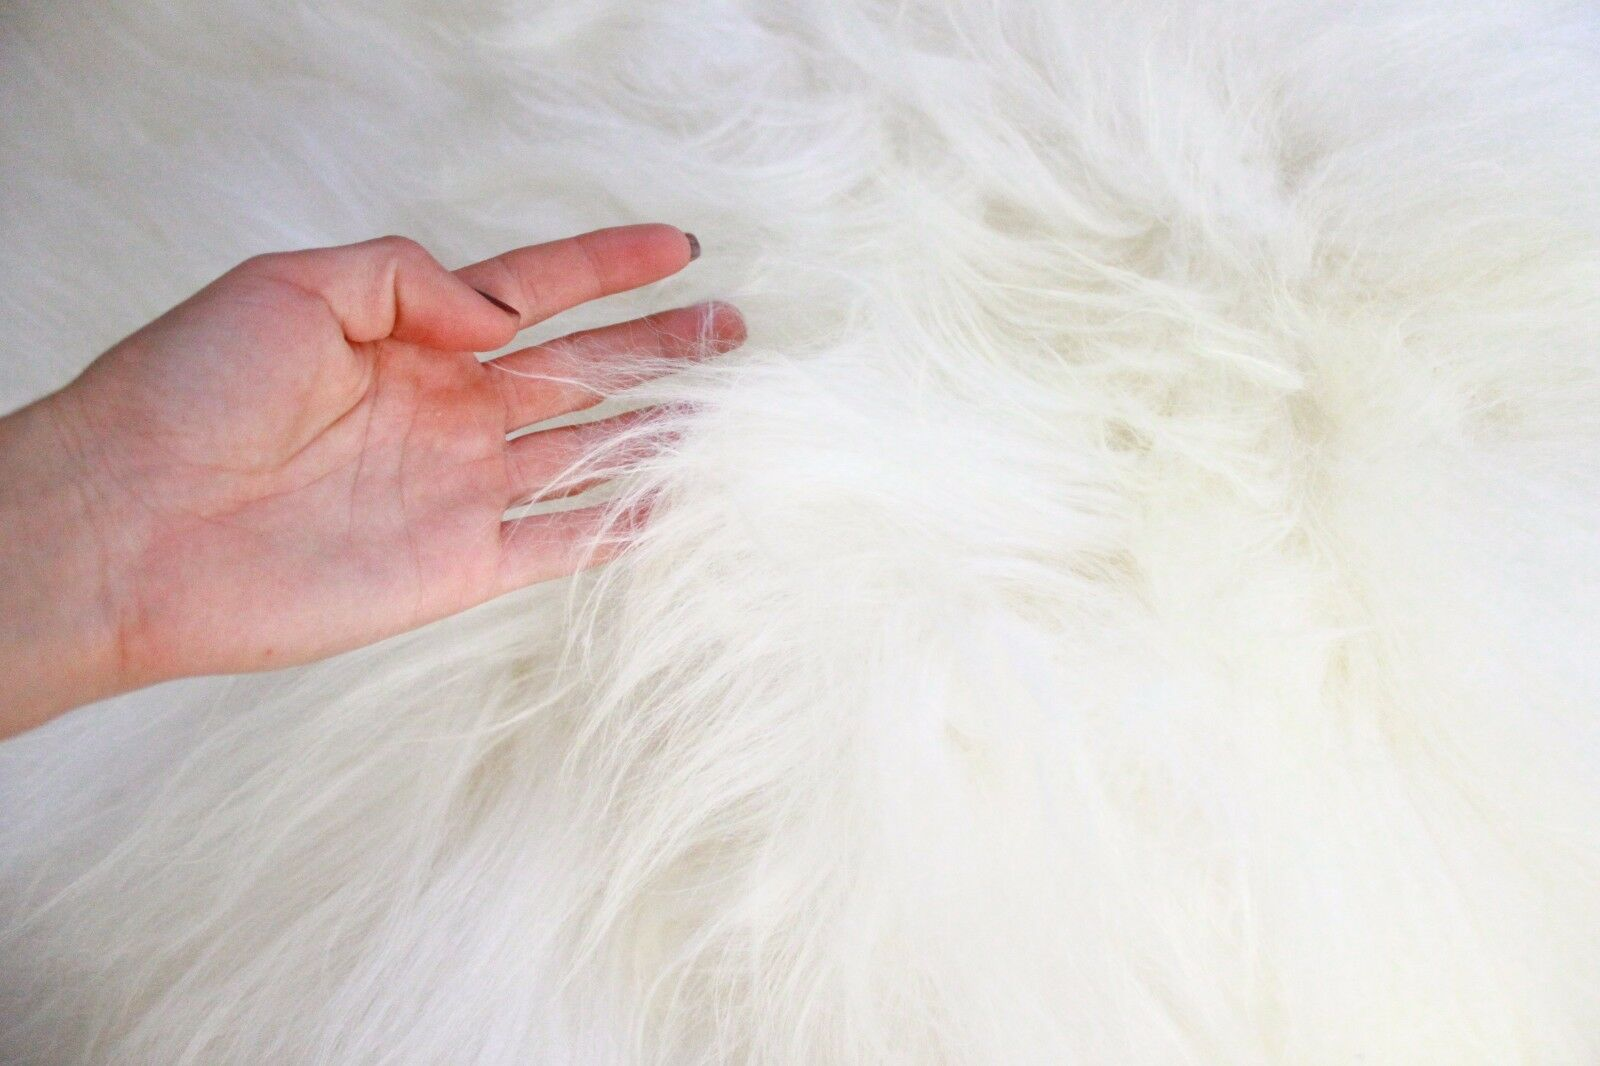 Genuine Natural LARGE XL Icelandic Icelandic Icelandic Sheepskin Rug, Pelt, long fur  Weiß 407ee5